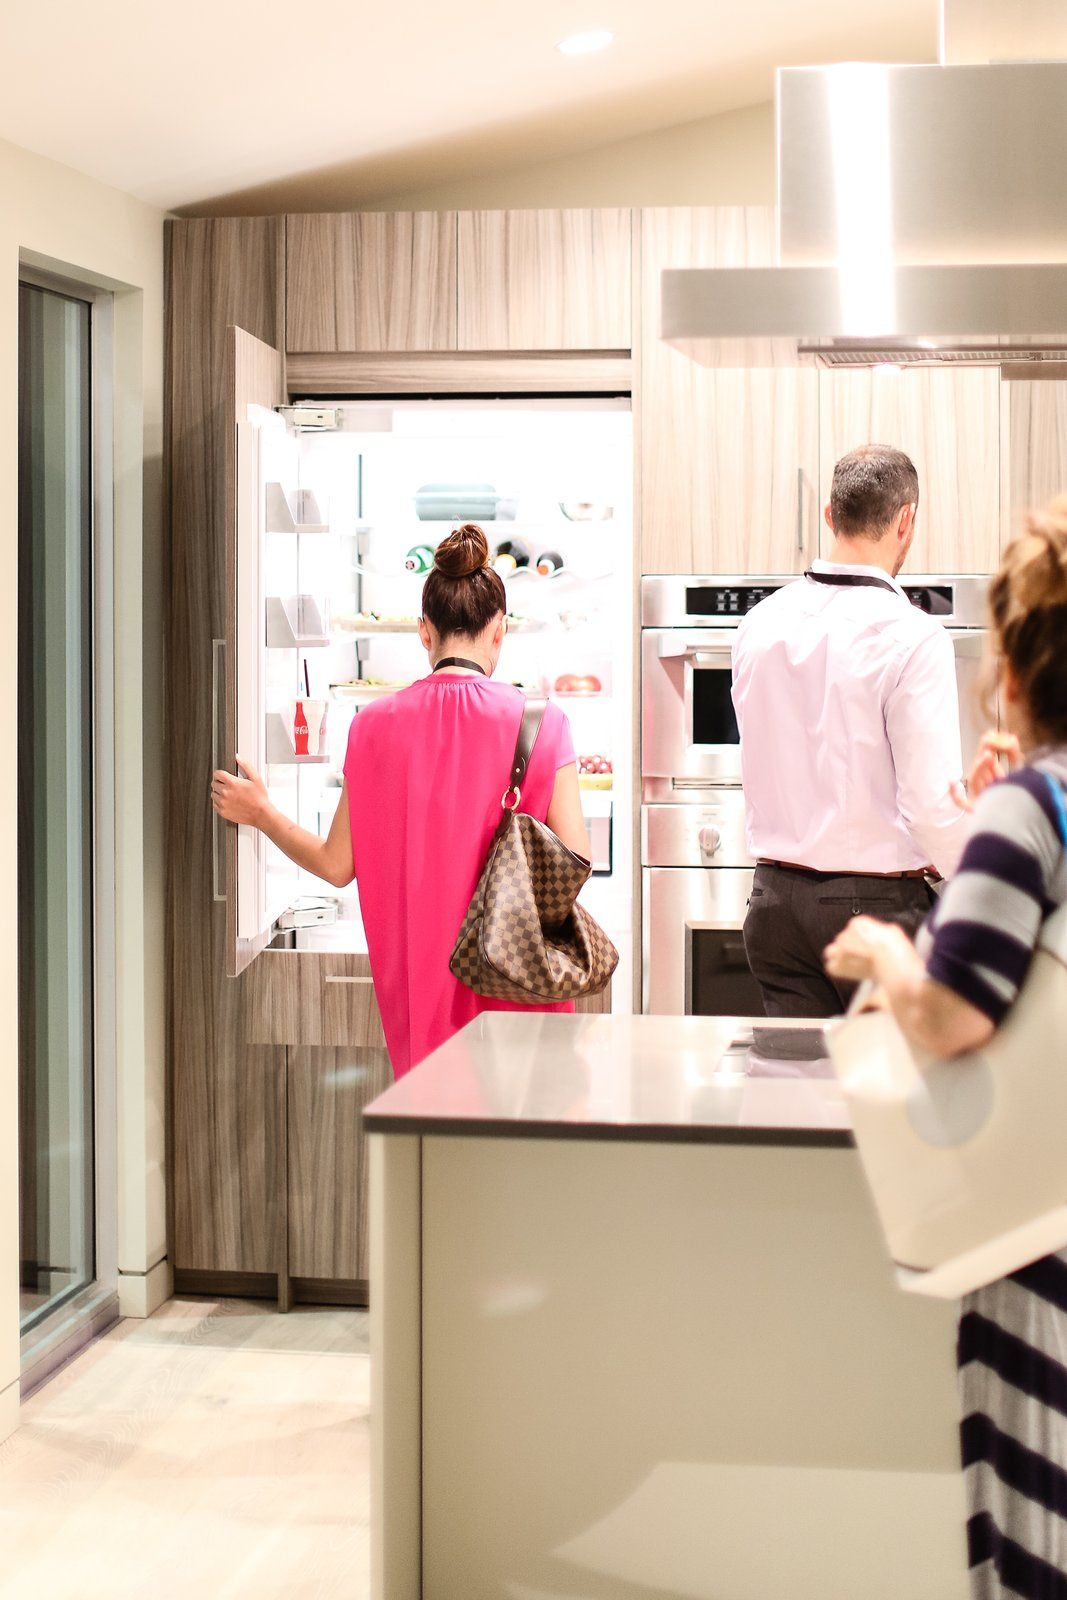 """The open house provided visitors the opportunity to interact with Monogram appliances in a natural setting. """"The definition of technology isn't just electronics, it's the functionality that can improve people's lives,"""" noted Blecker during the panel, summing up how an intuitive kitchen serves the consumer.  Photo 6 of 6 in Monogram Modern Home Tour Joins the Los Angeles Design Scene"""